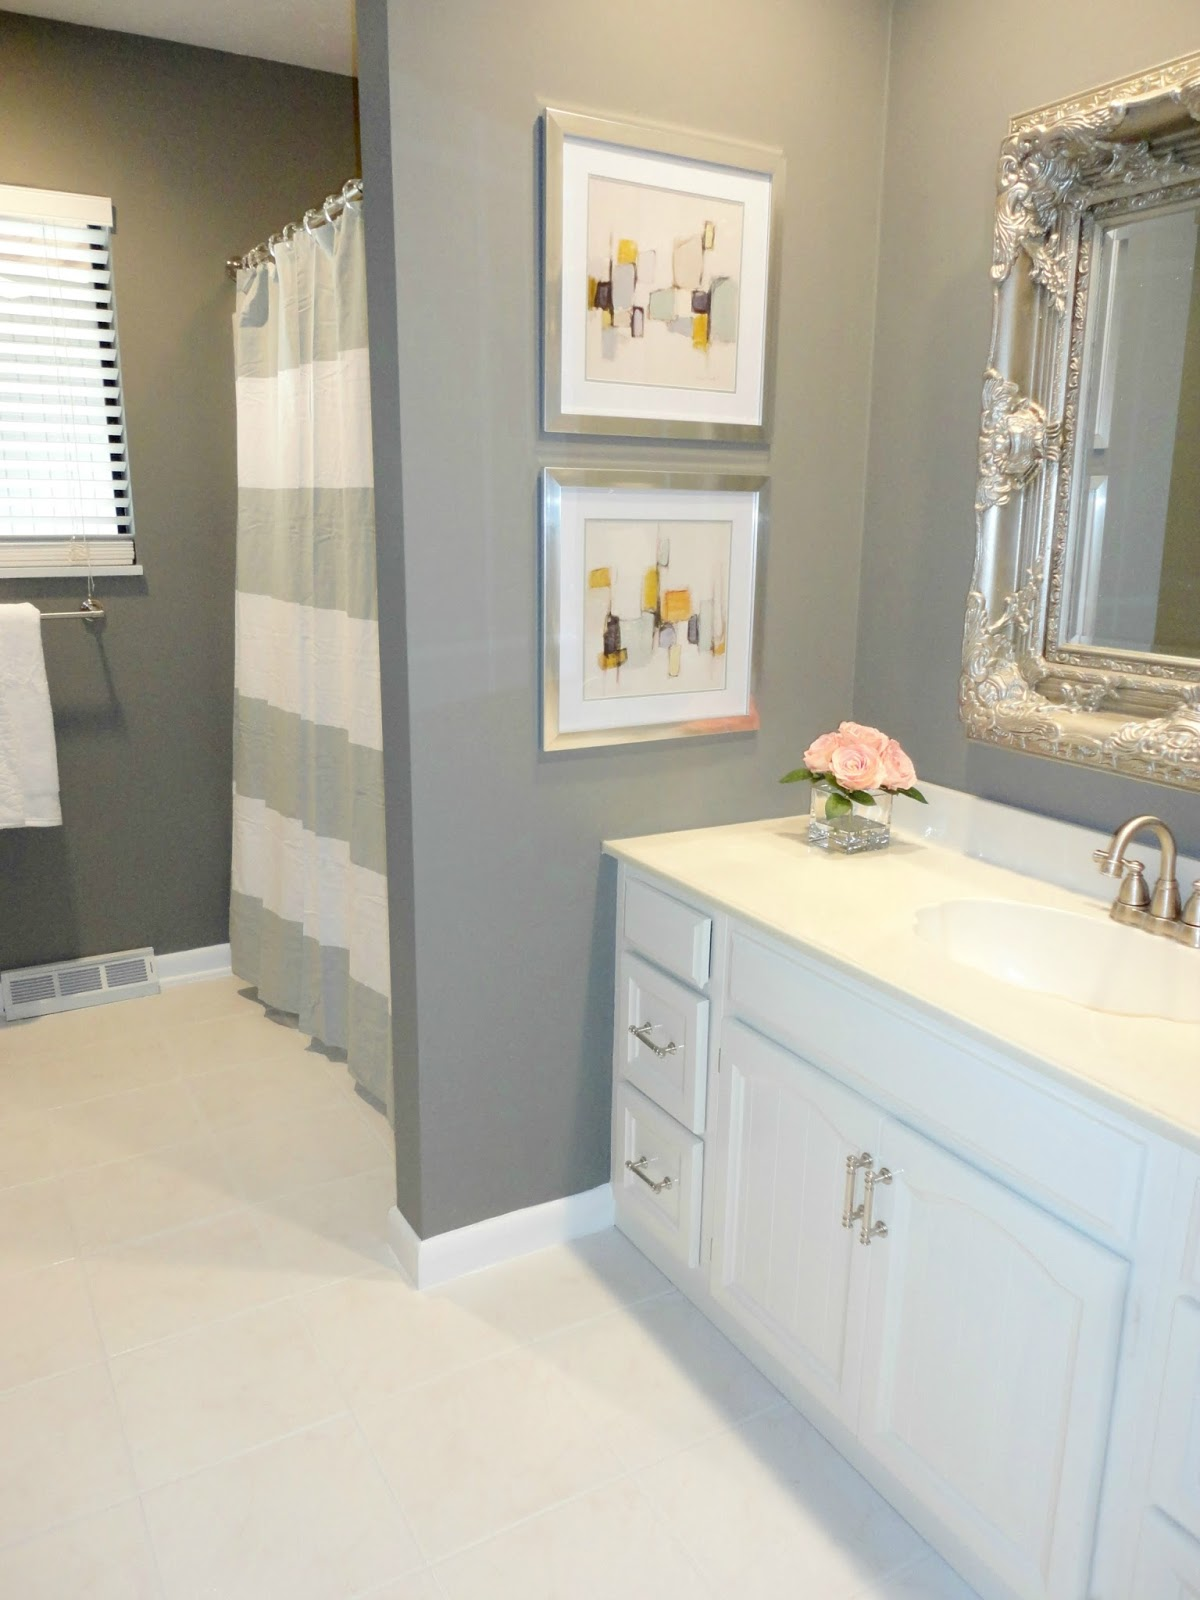 Bathroom Remodeling Ideas On A Budget livelovediy: diy bathroom remodel on a budget